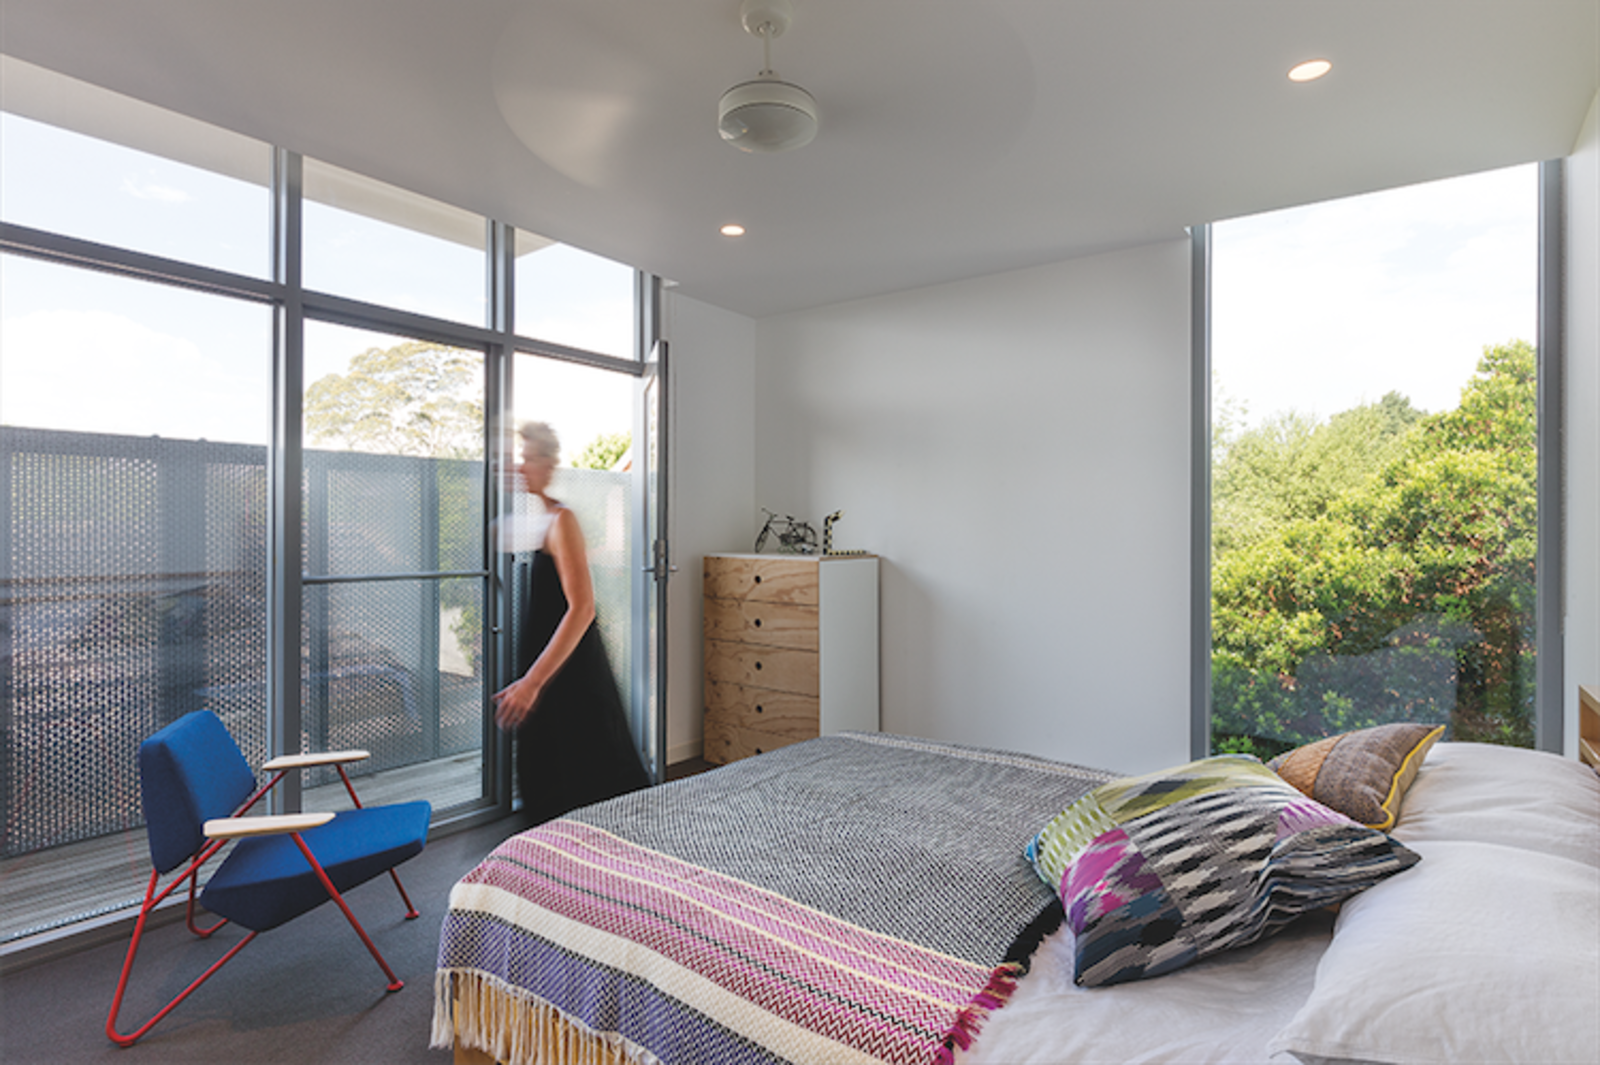 The same perforated aluminum employed for the fence is used as a privacy screen in the bedroom. The holes in the screen allow for light to spill through. Angular Australian House Fits a Family's Active Lifestyle - Photo 4 of 7